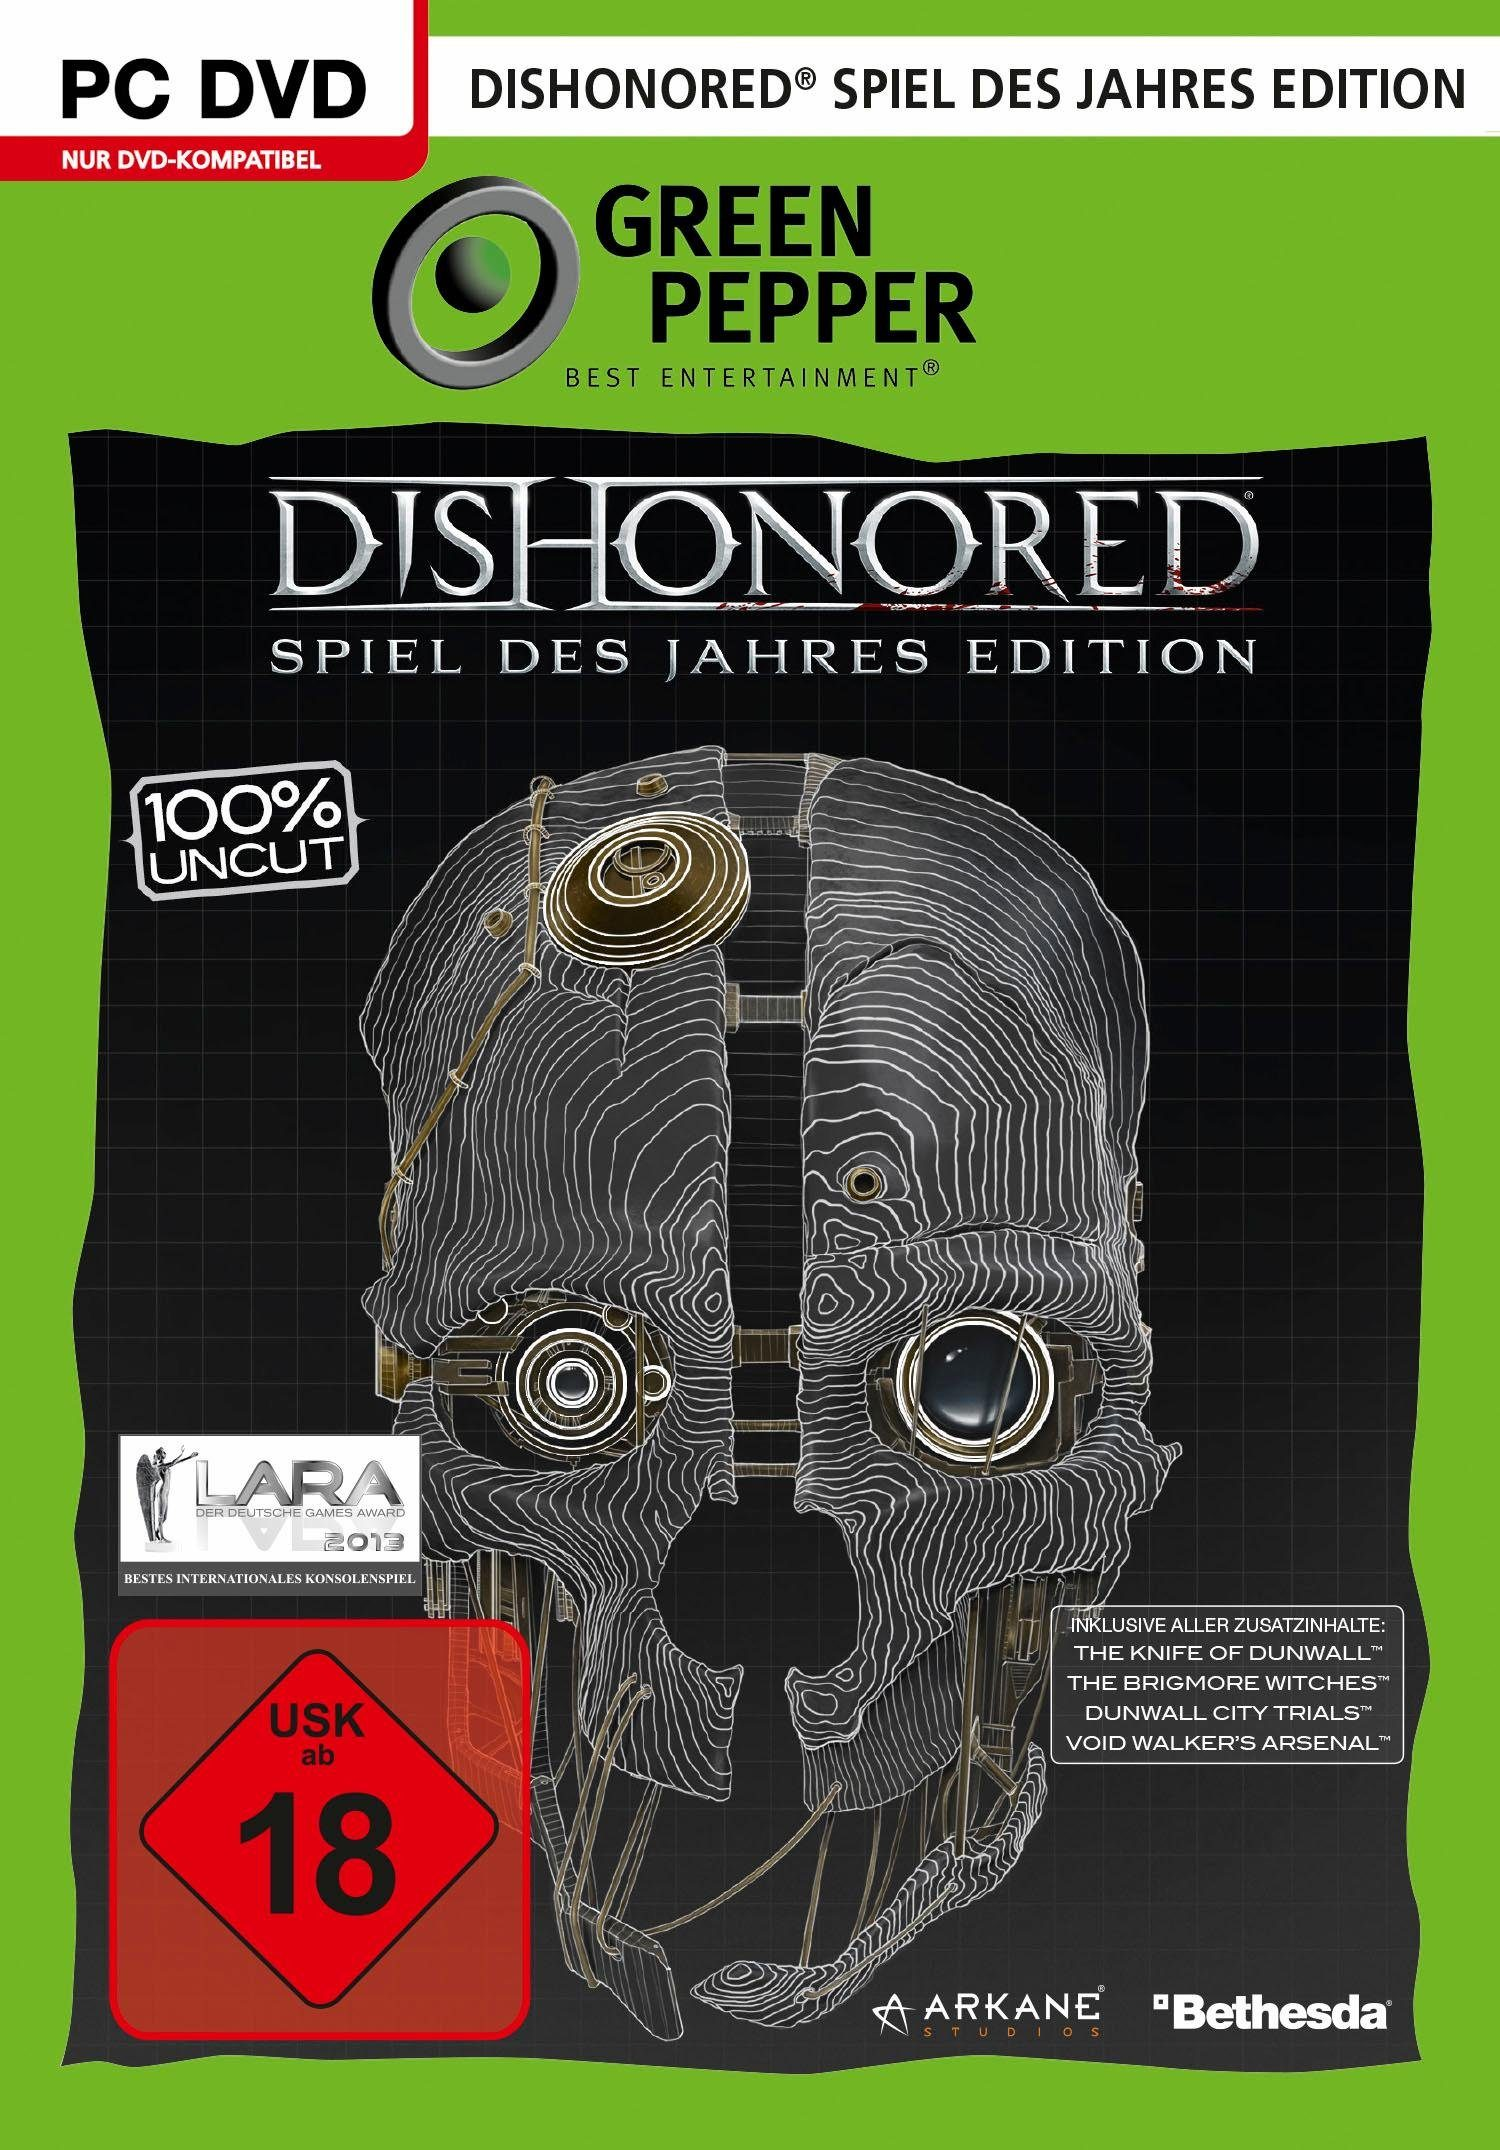 Dishonored - Spiel des Jahres Edition PC, Software Pyramide